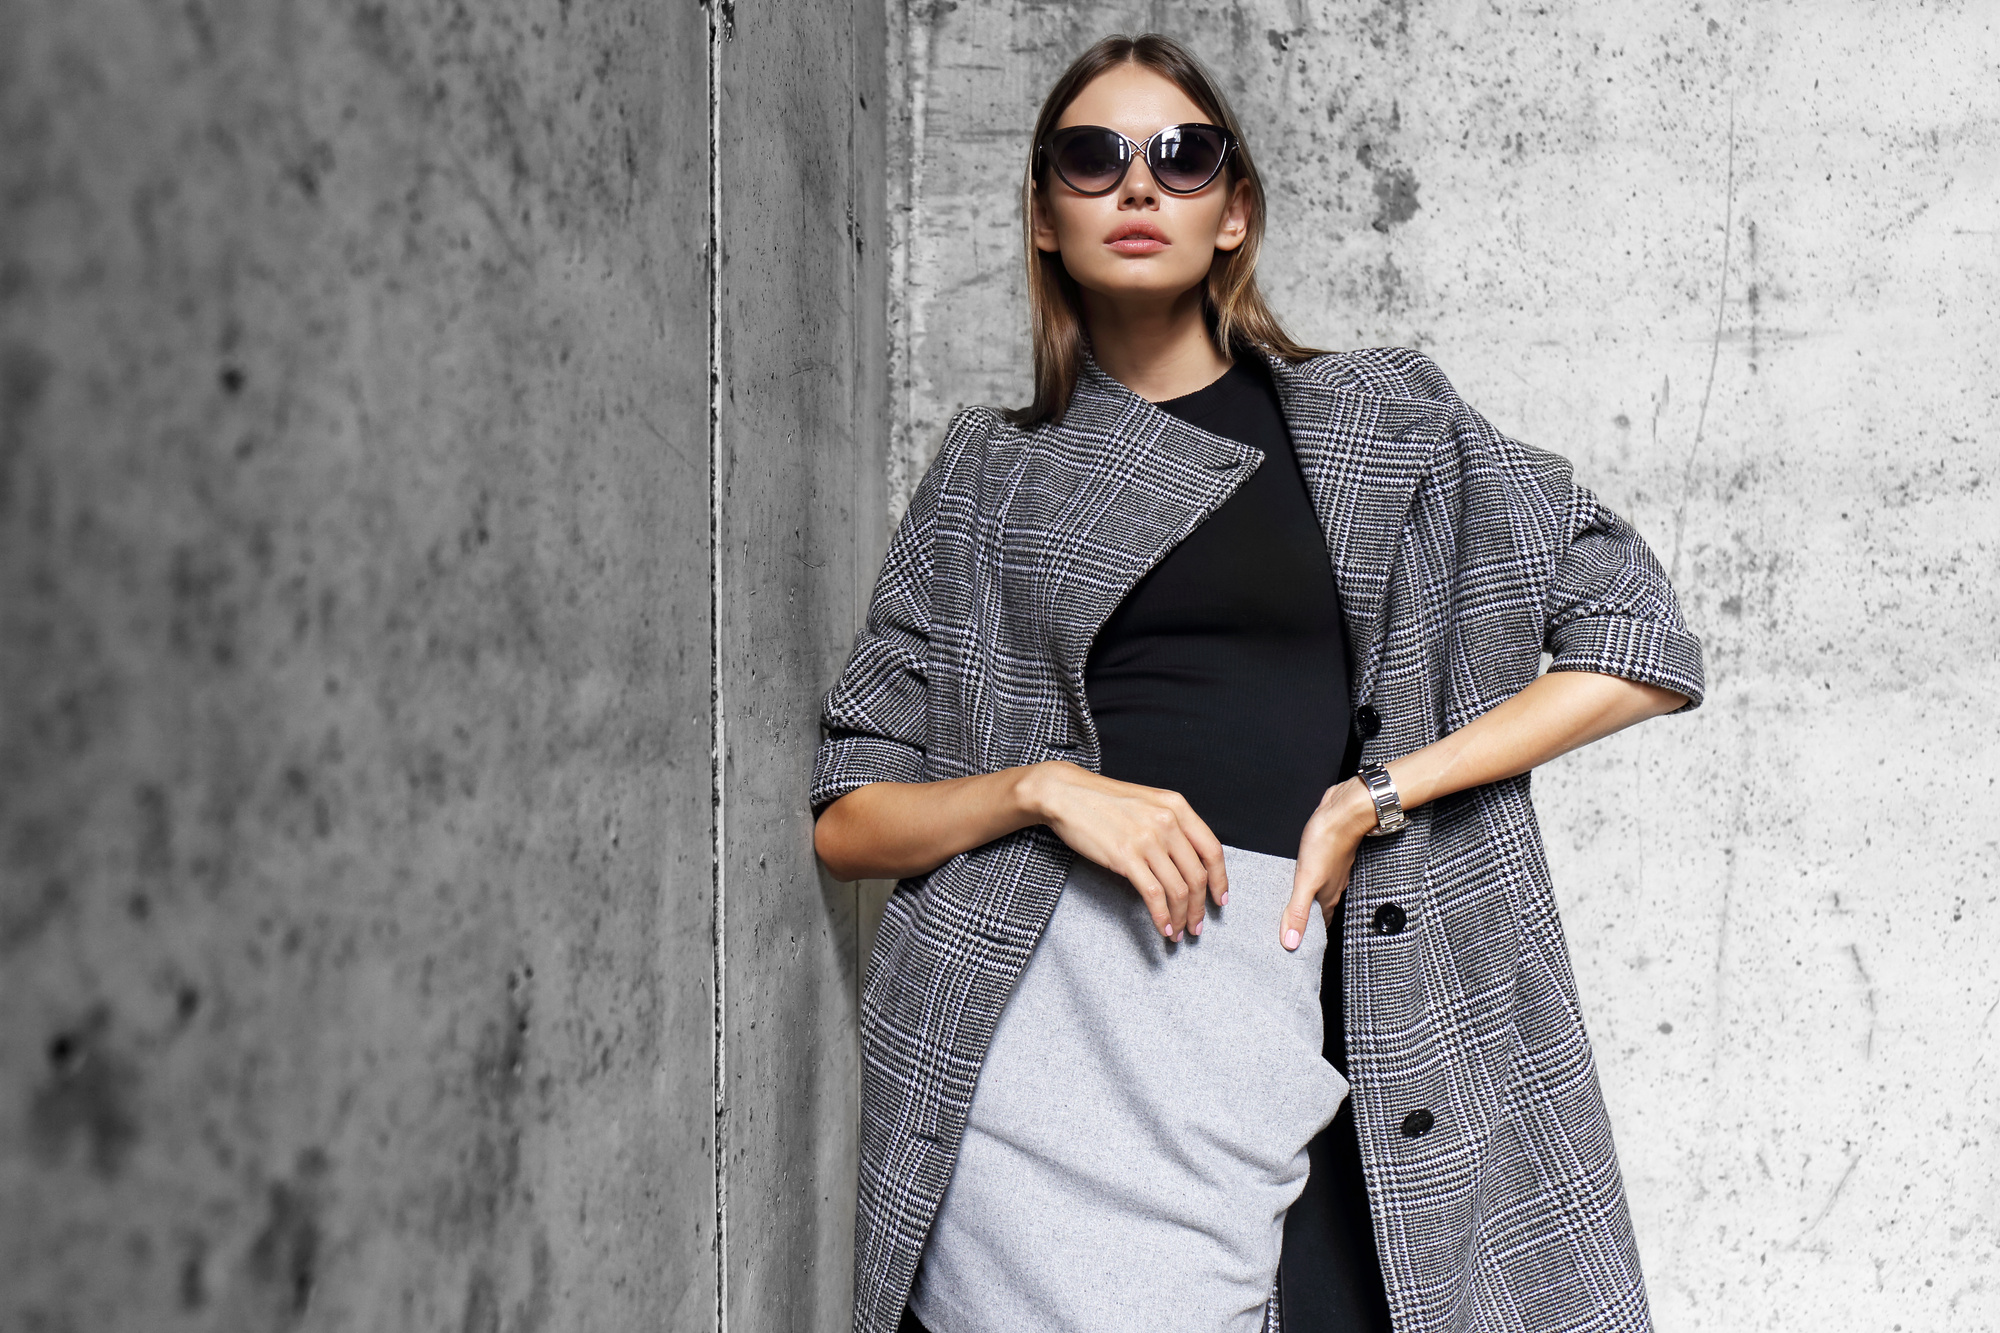 How To Identify Your Personal Fashion Style